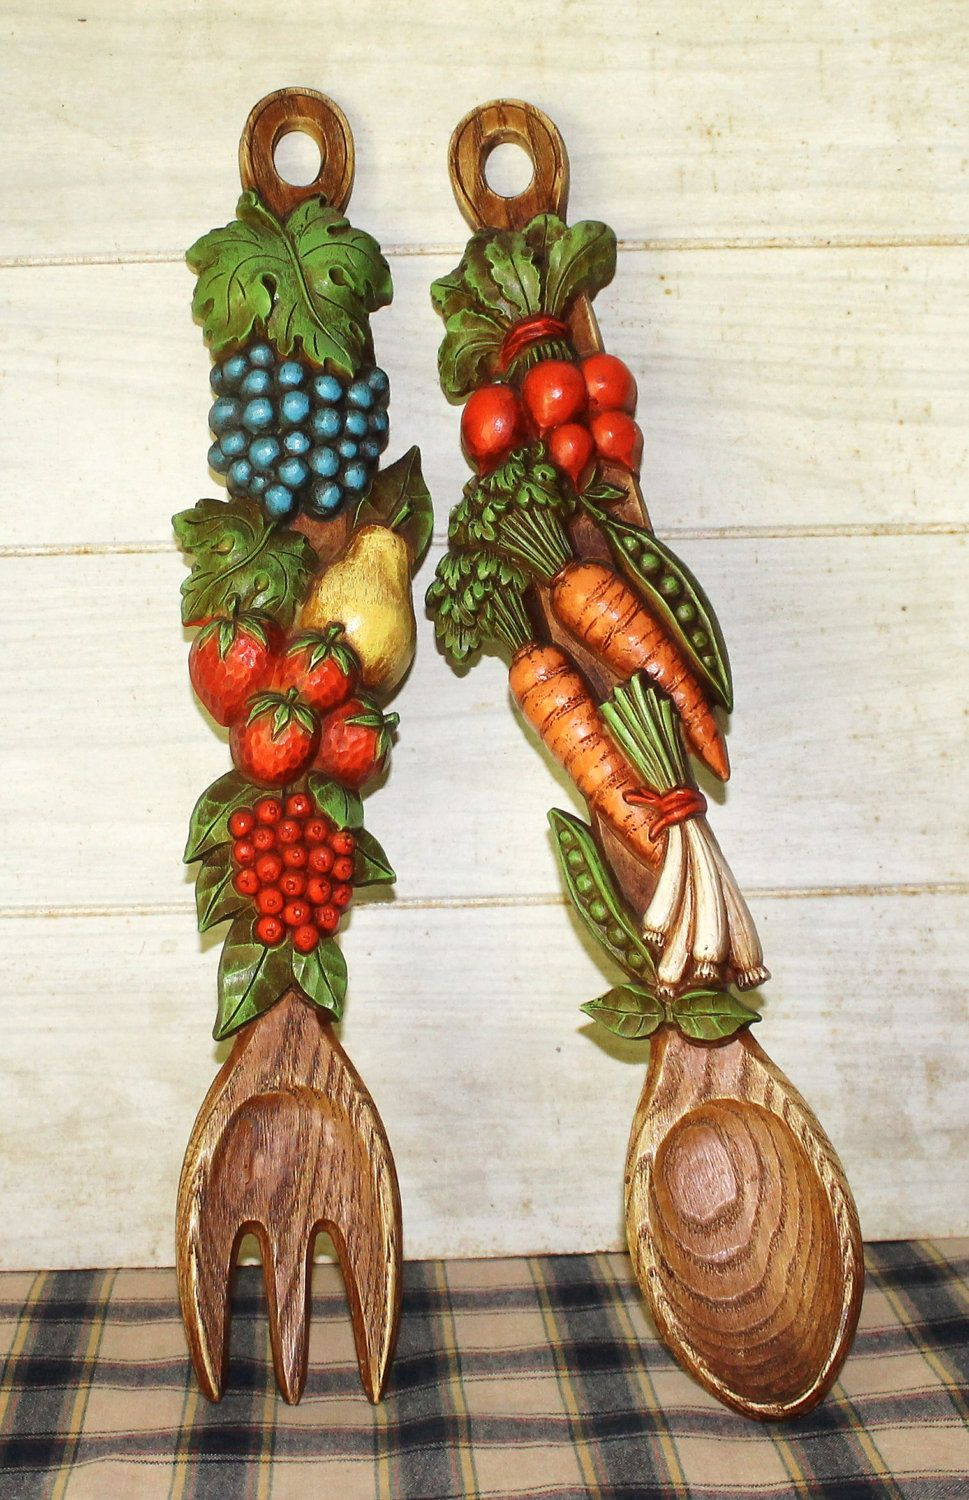 Funky Retro Vintage Kitchen Decor Fruit Vegetable Spoon Wall Hanging Kitsch Home